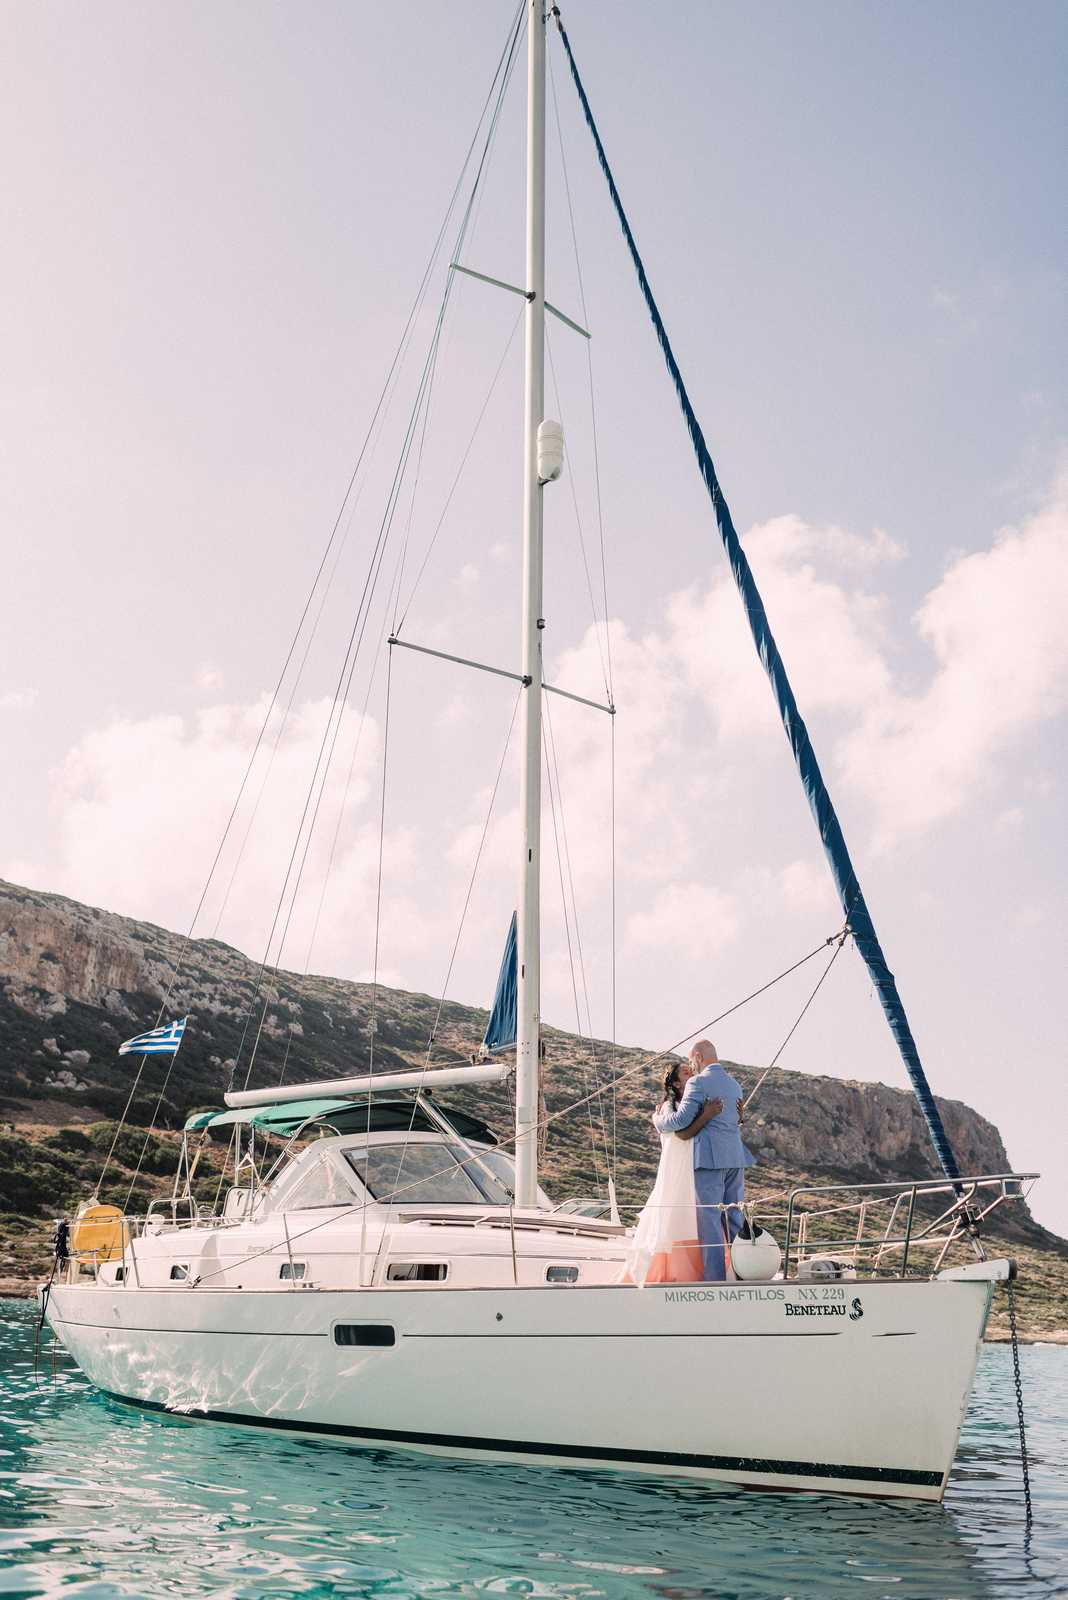 Bride and groom on a yacht in Crete